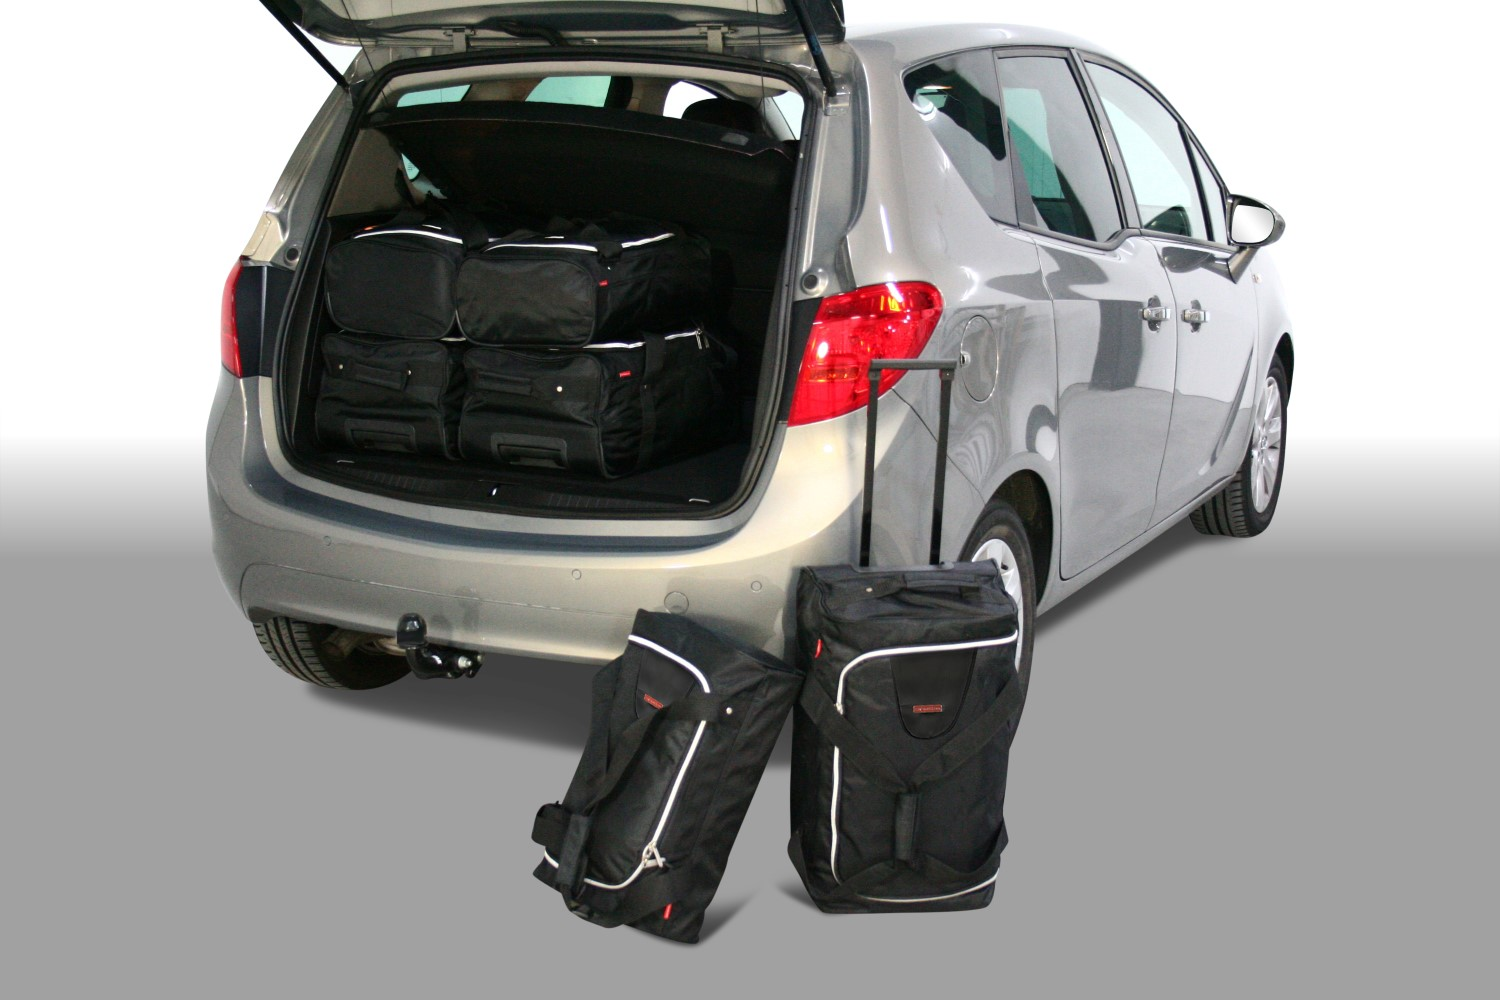 meriva opel meriva b 2010 2017 car bags travel bags. Black Bedroom Furniture Sets. Home Design Ideas